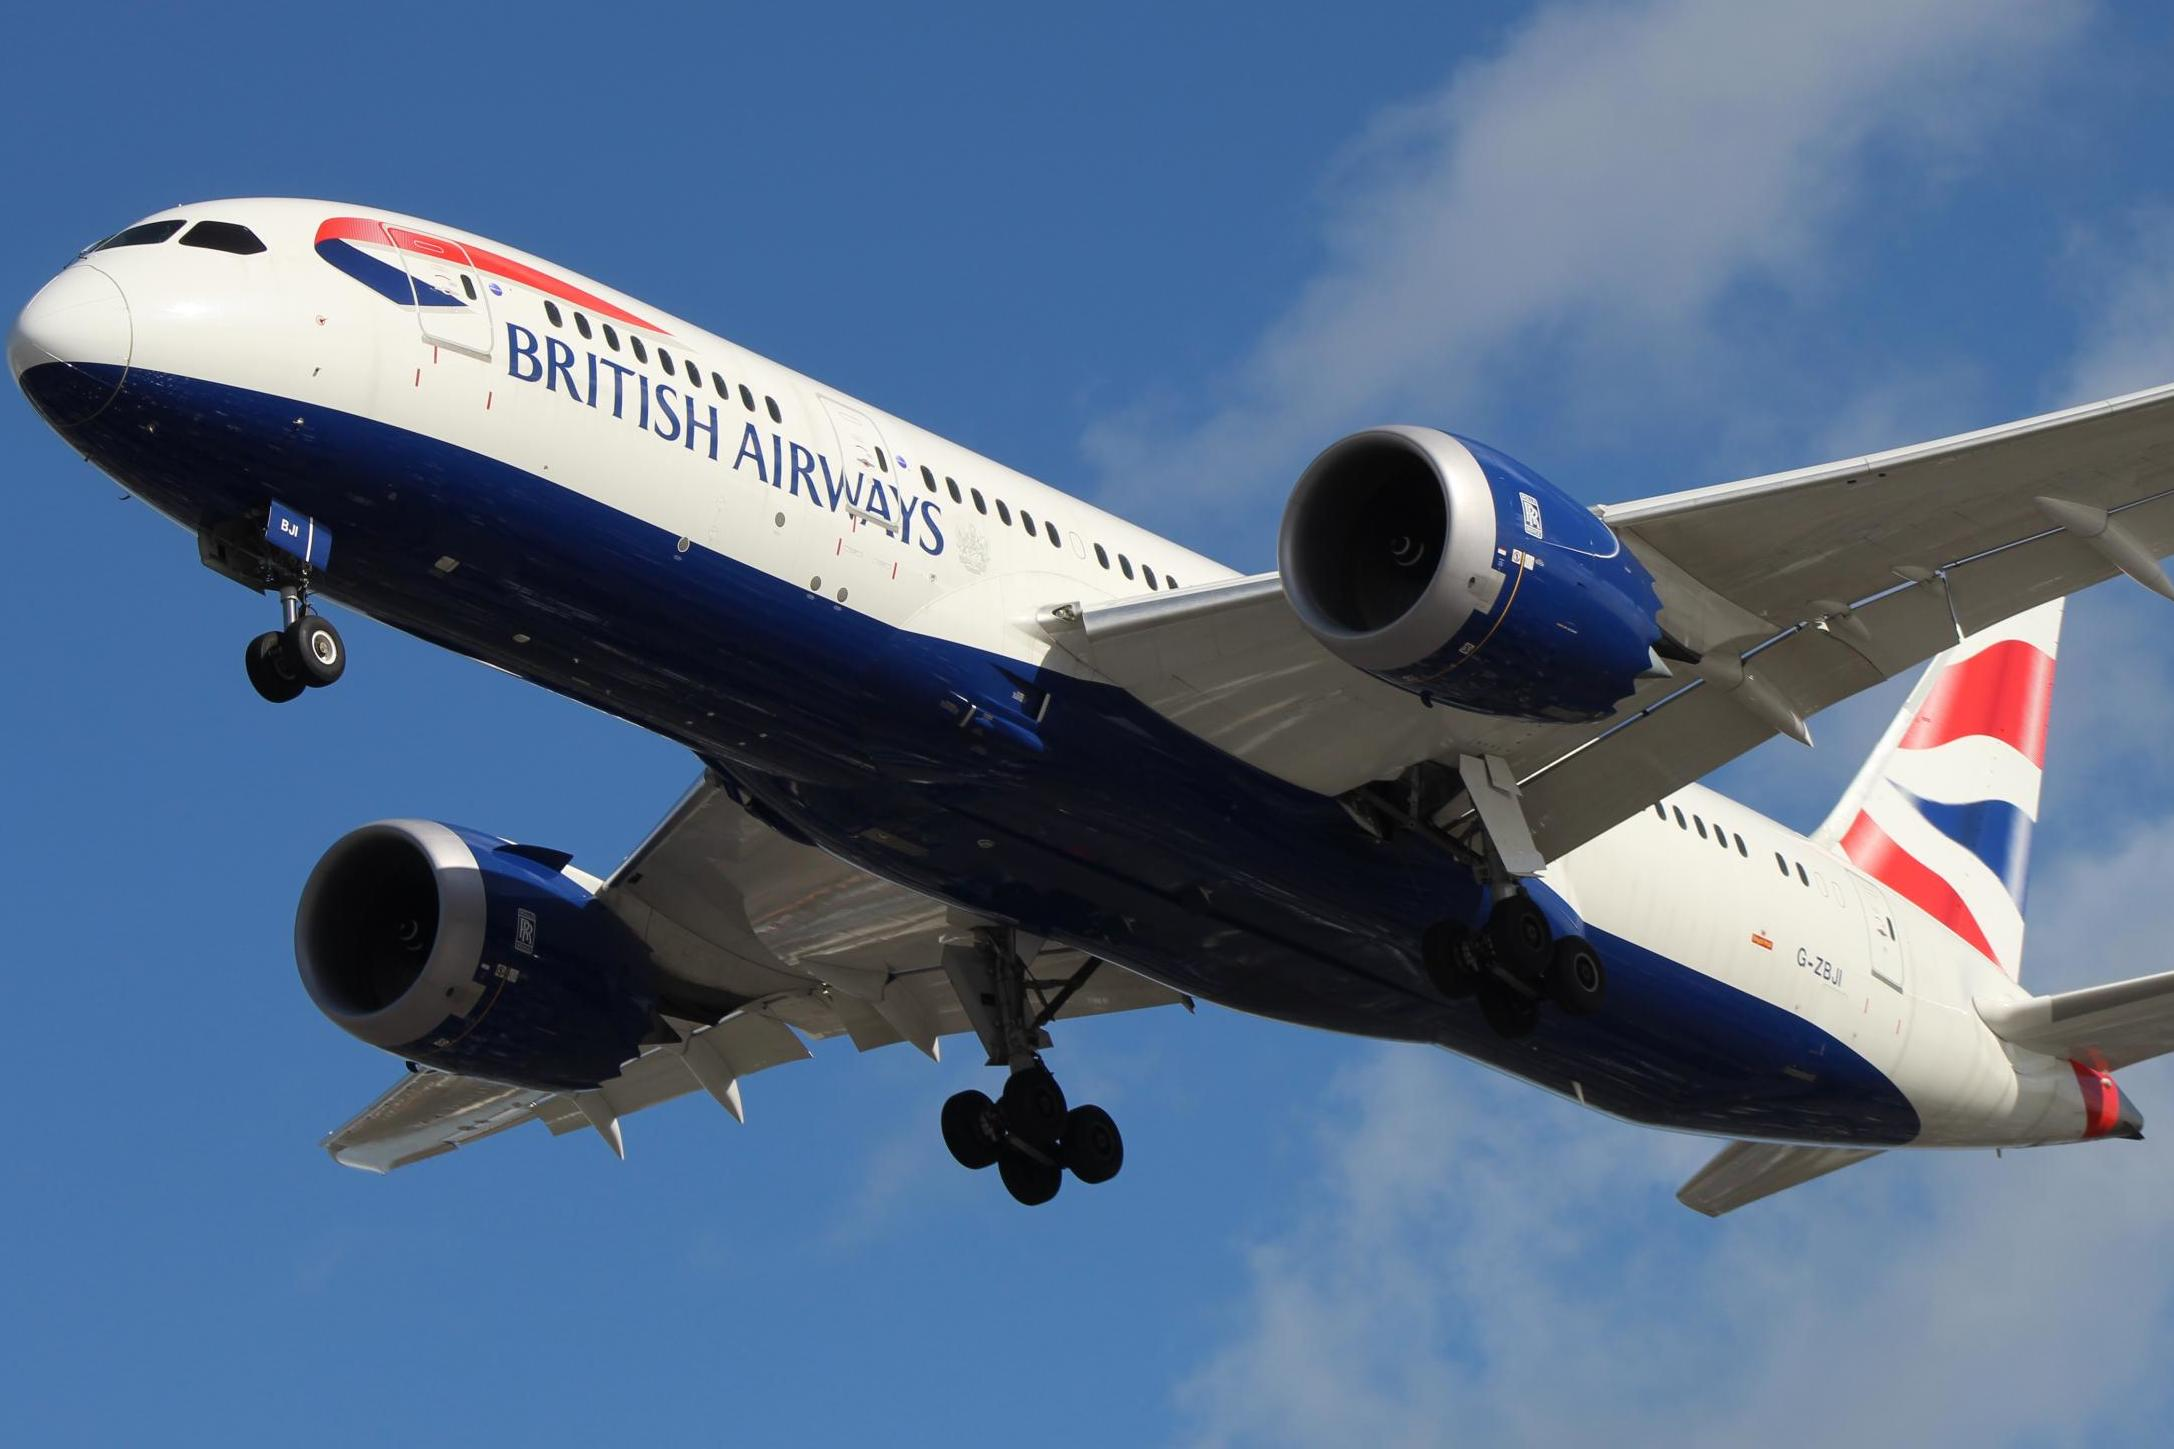 Government should strip Heathrow slots from British Airways over job cuts, says MP